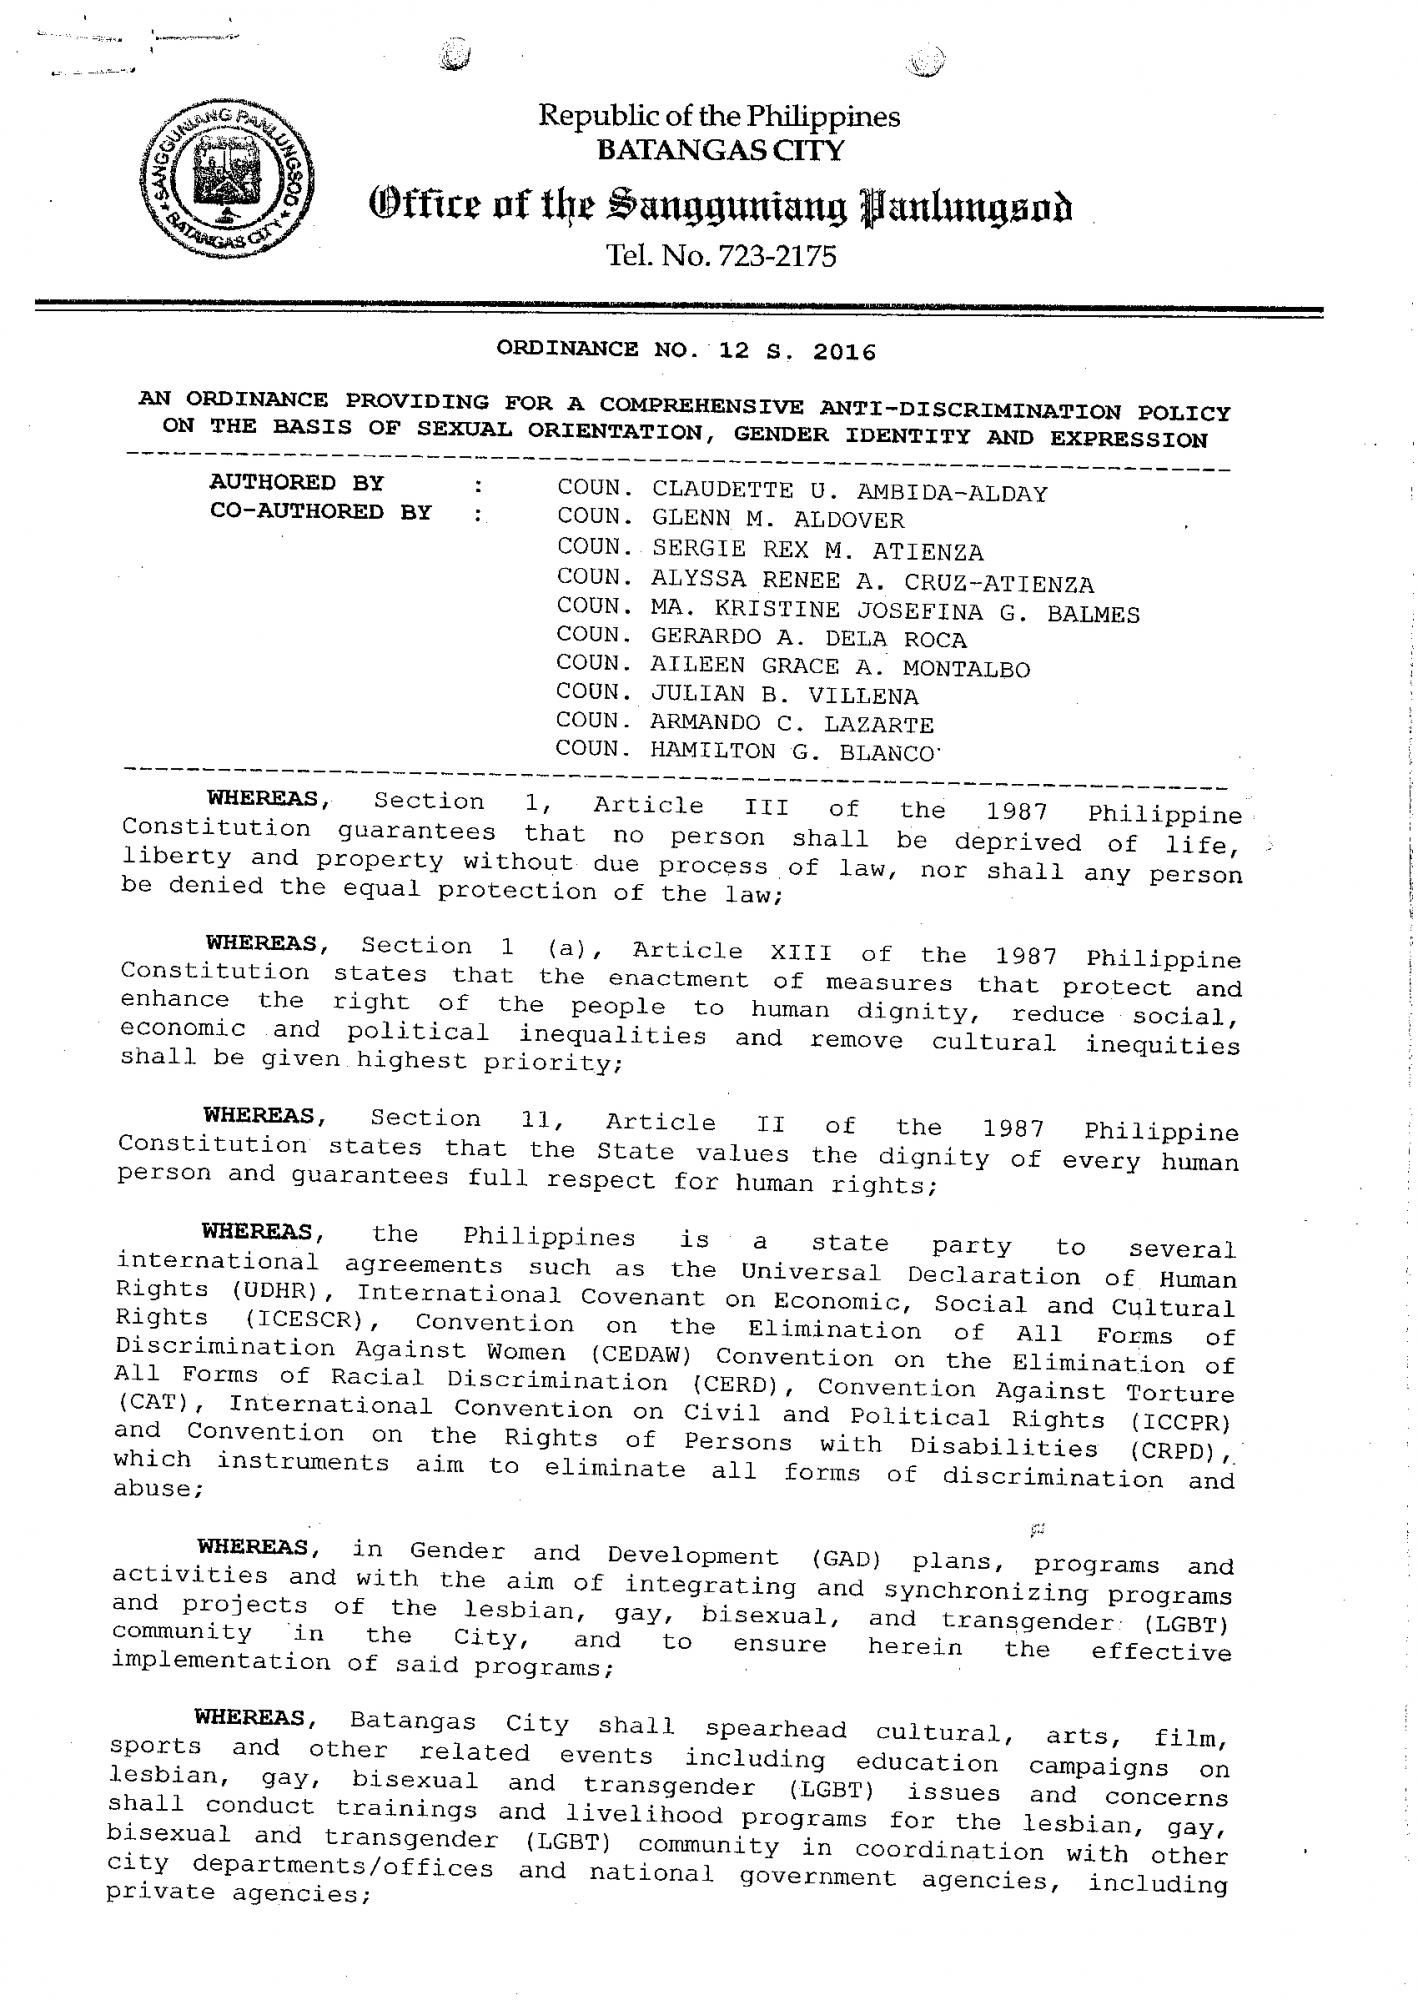 Batangas City Anti-Discrimination Ordinance